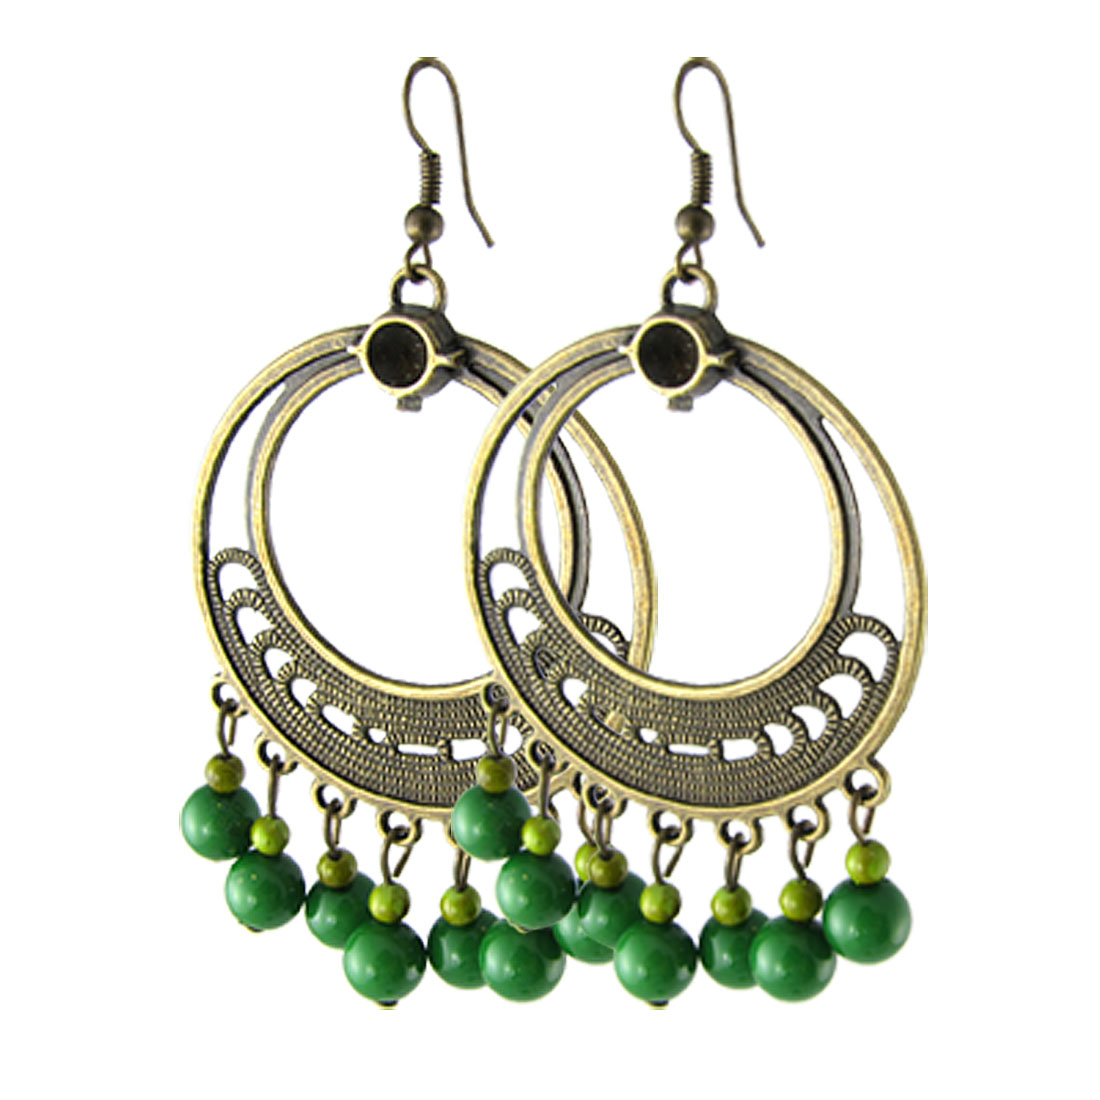 Pair Ladies Bronze Tone Round Loop Dangling Green Beads Ear Hook Earring